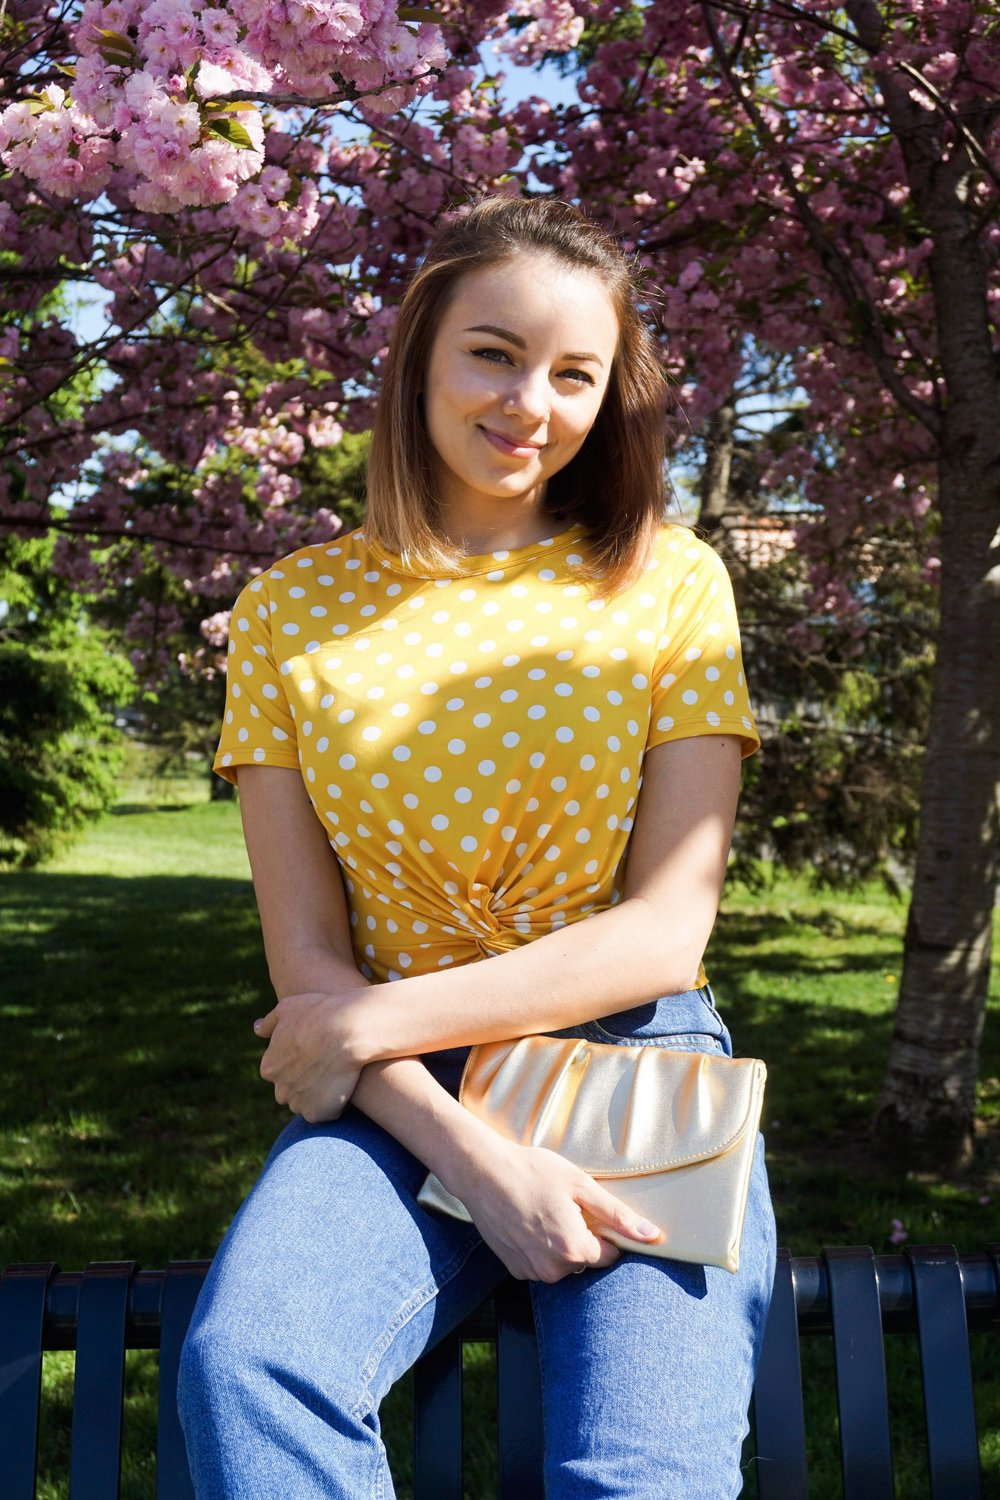 A blogger looking at the camera, wearing a yellow and white polka dot crop top, jeans, and a gold clutch.